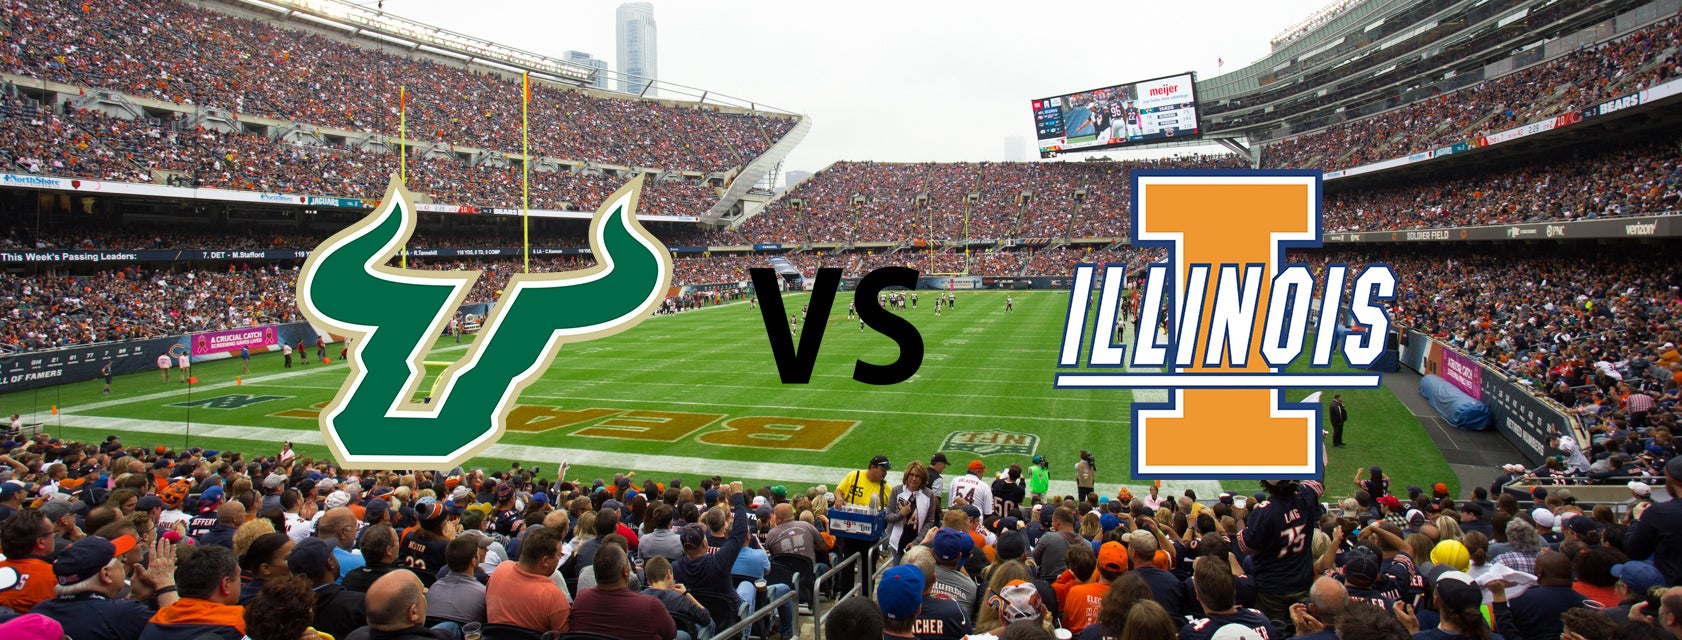 South Florida vs Illinois Tickets